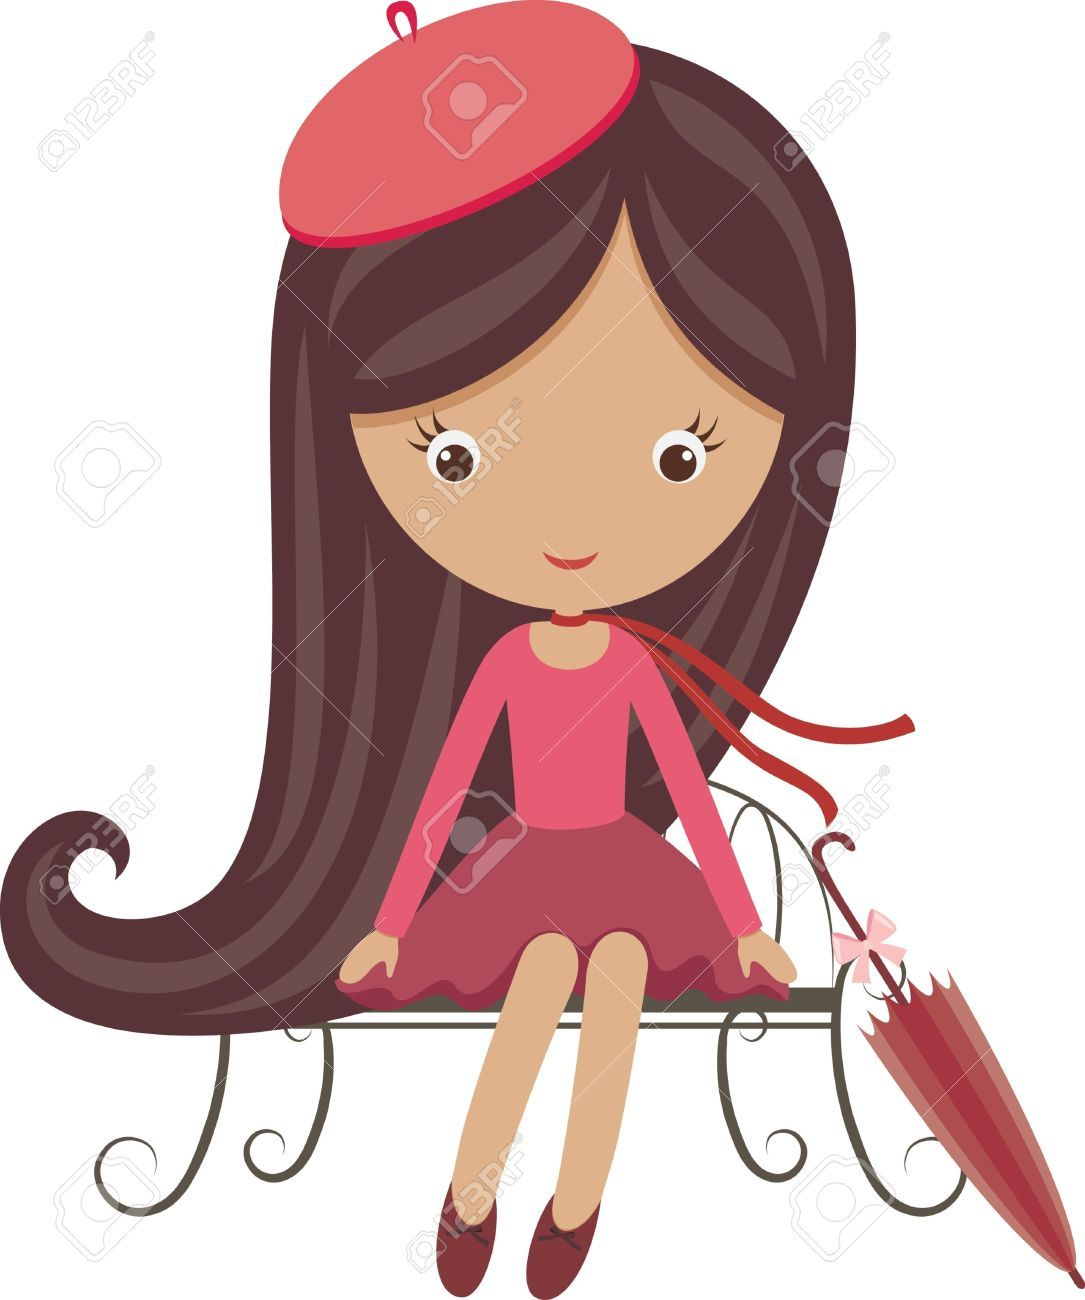 French Woman Cliparts, Stock Vector And Royalty Free French Woman.